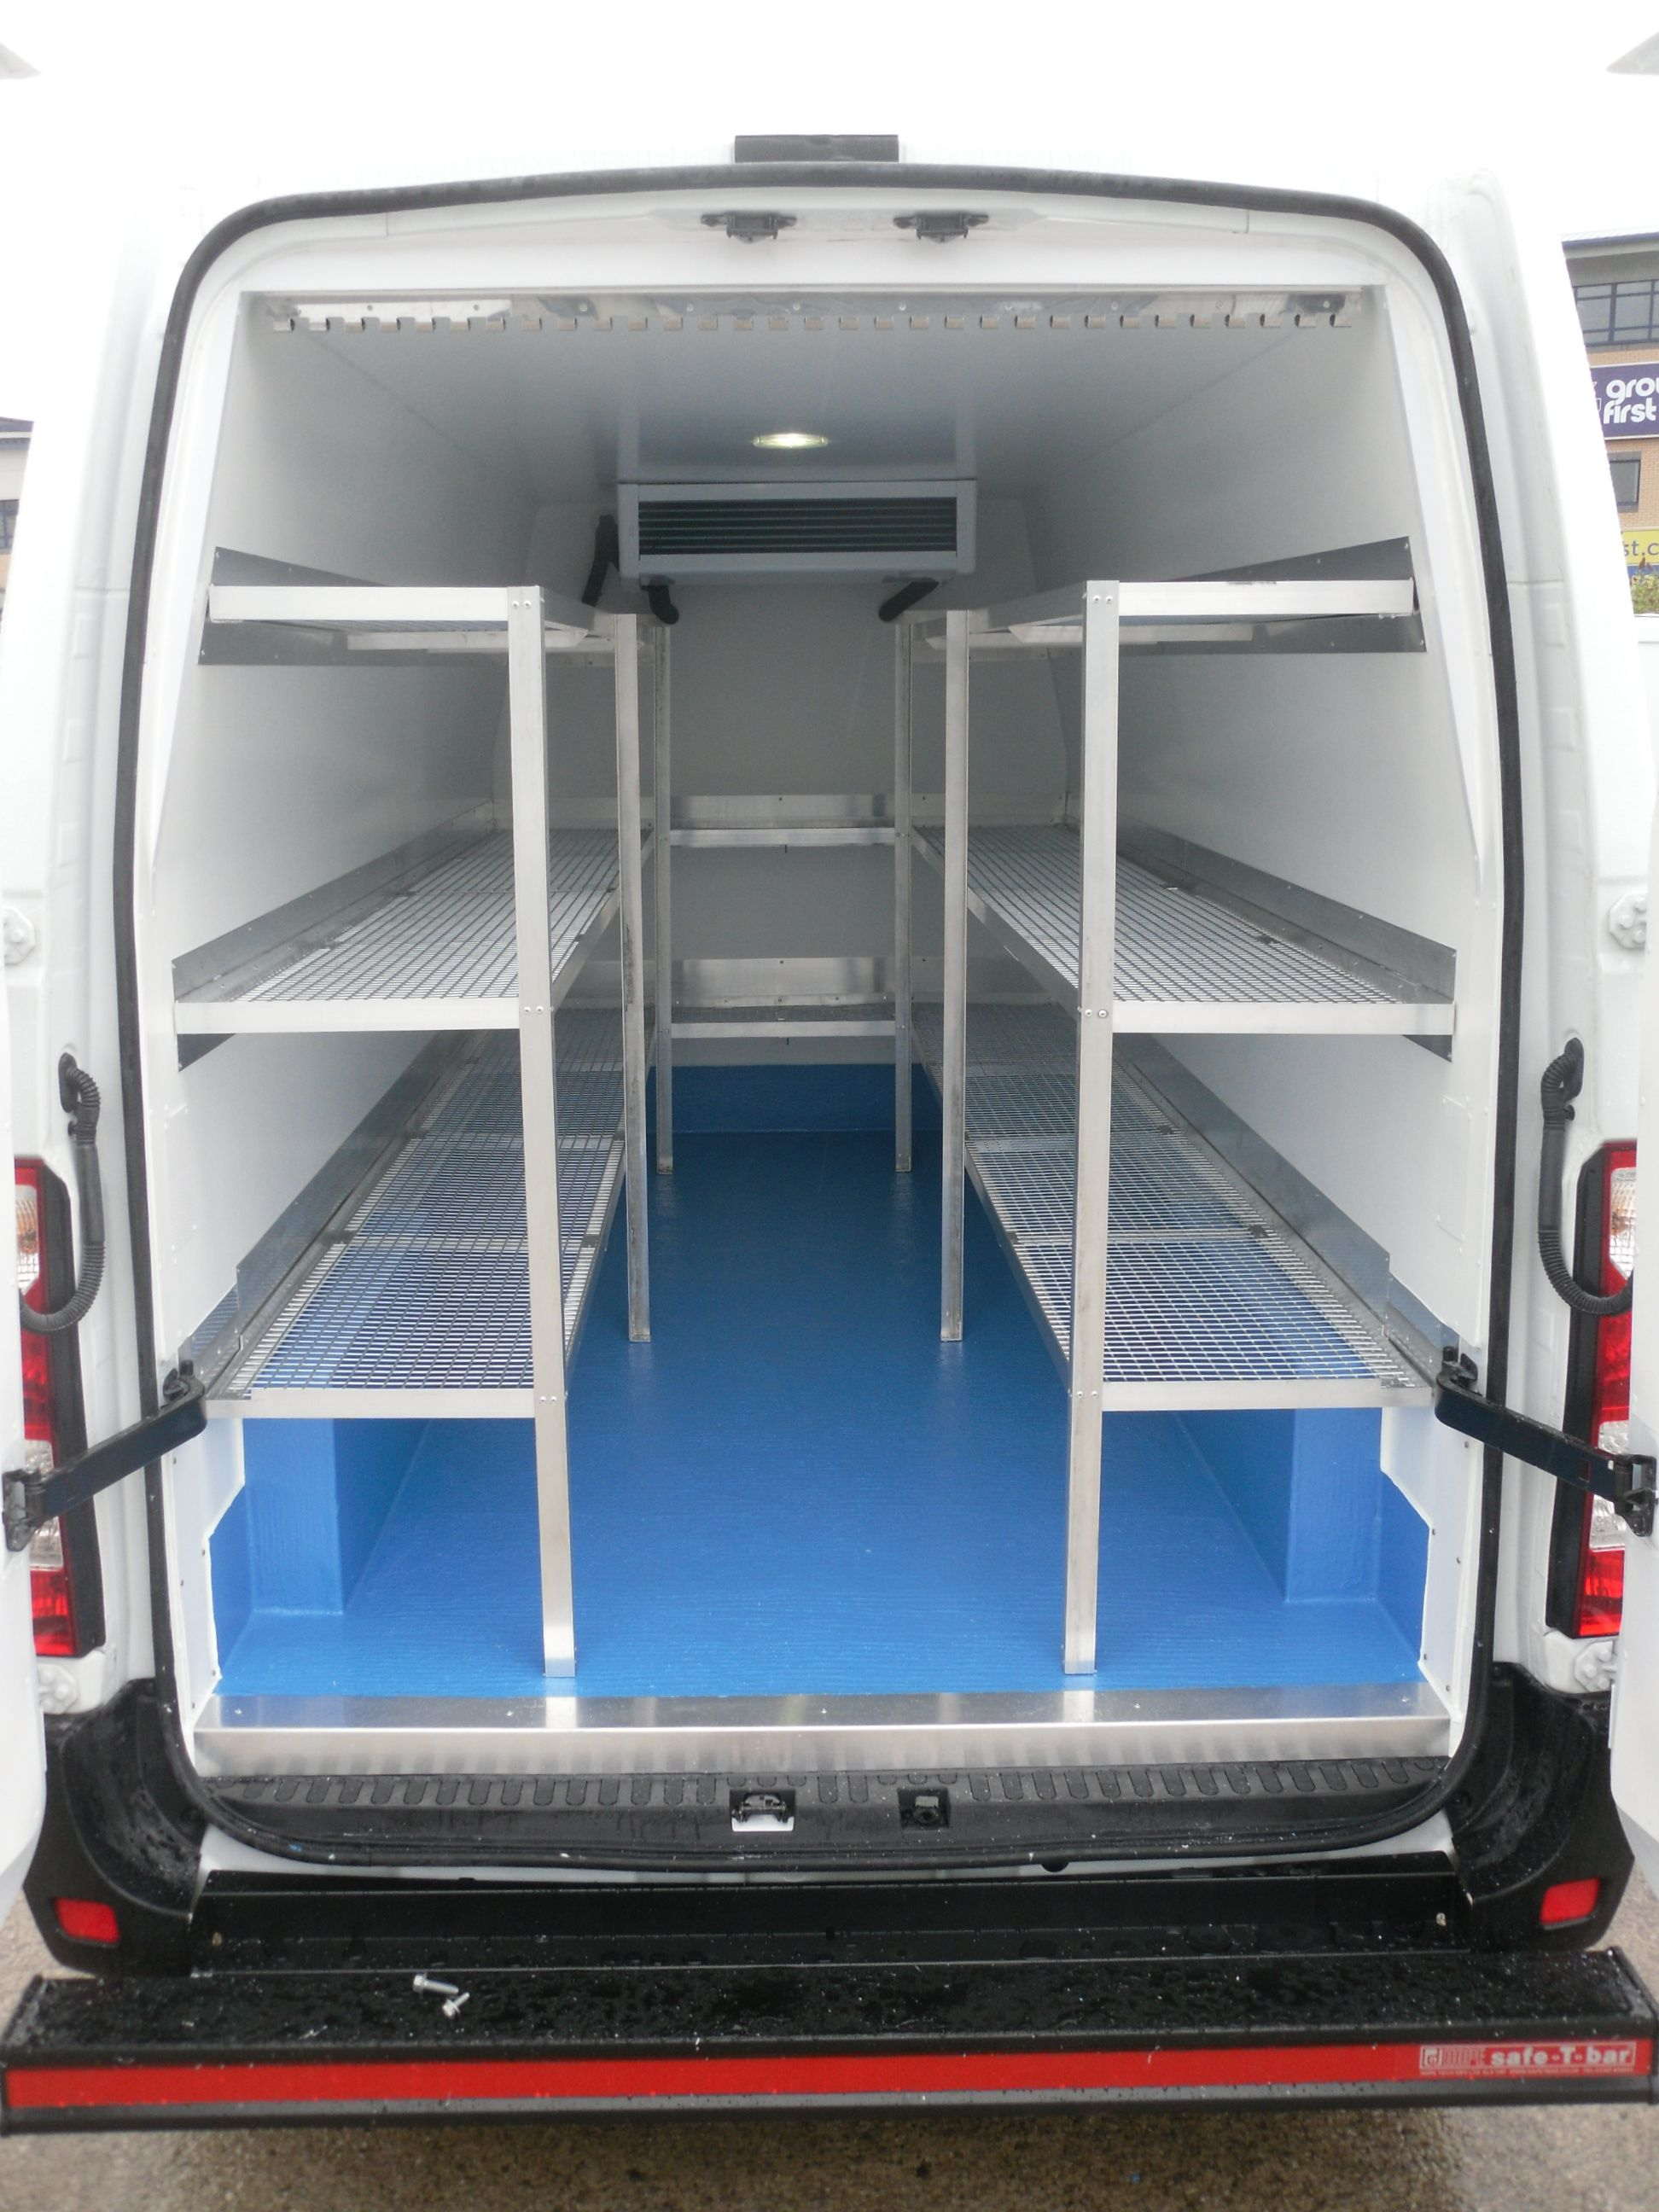 Refrigerated Van Shelving I Like The Concept Of Having Removable Shelving This Will Allow Us To Transport Pretty Much Anythi Van Shelving Shelving Shelves